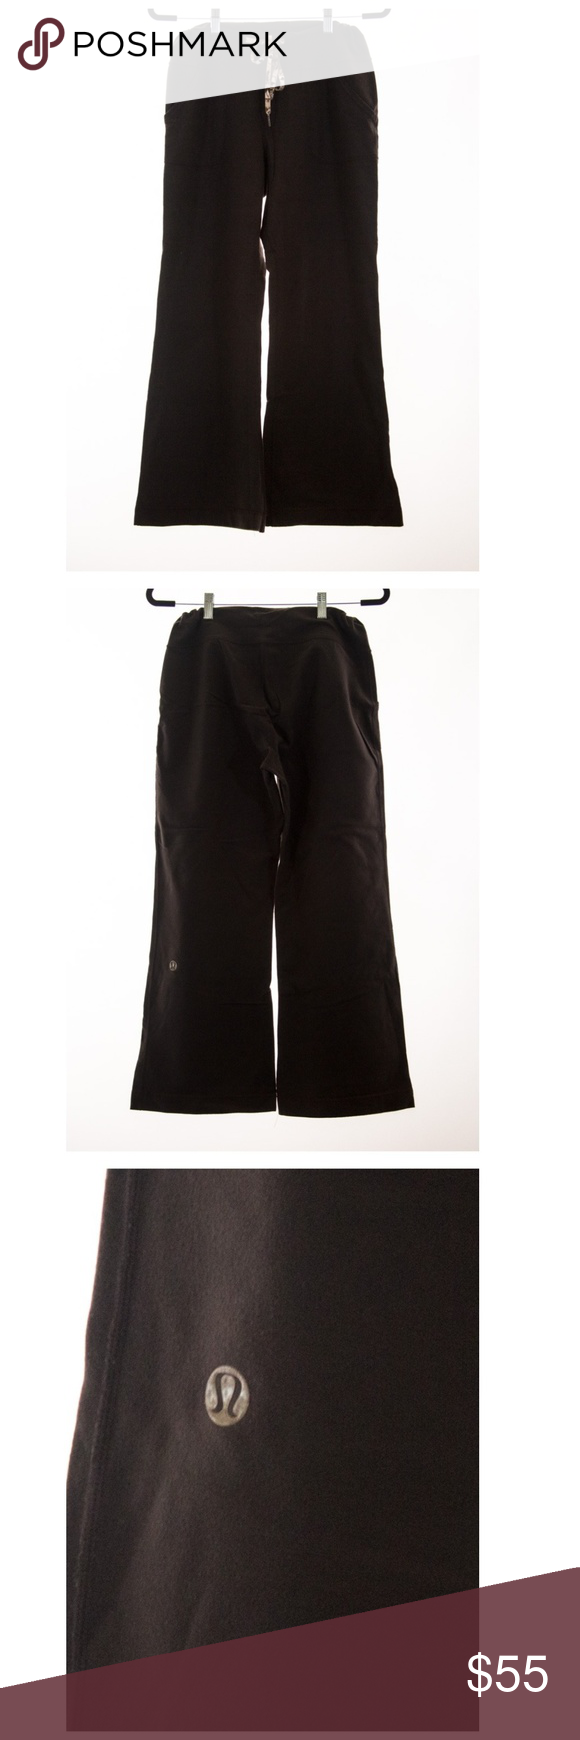 Lululemon Brown Wide Leg Pants Size 6 Wide leg Lululemon pants. pre-loved. Great condition. Waistline has a string, which has very cute images on it. lululemon athletica Pants Wide Leg